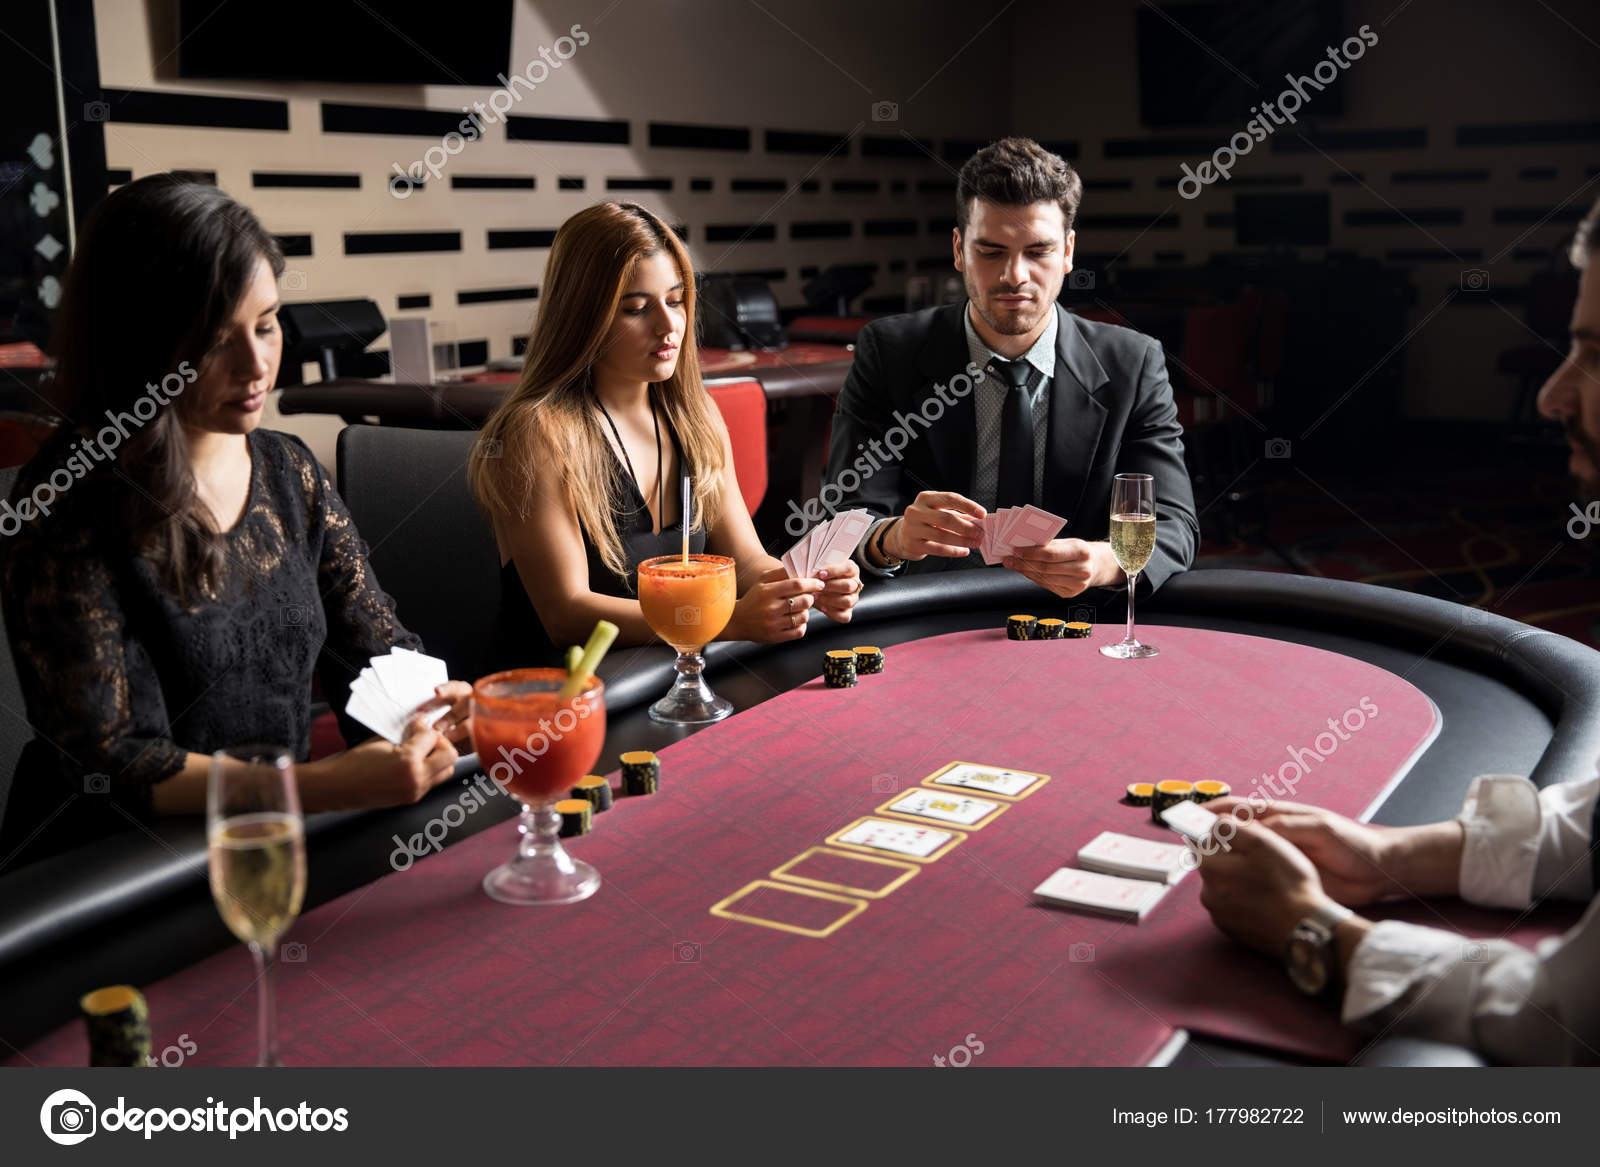 Group People Sitting Poker Table Looking Very Serious Game Casino U2014 Stock  Photo